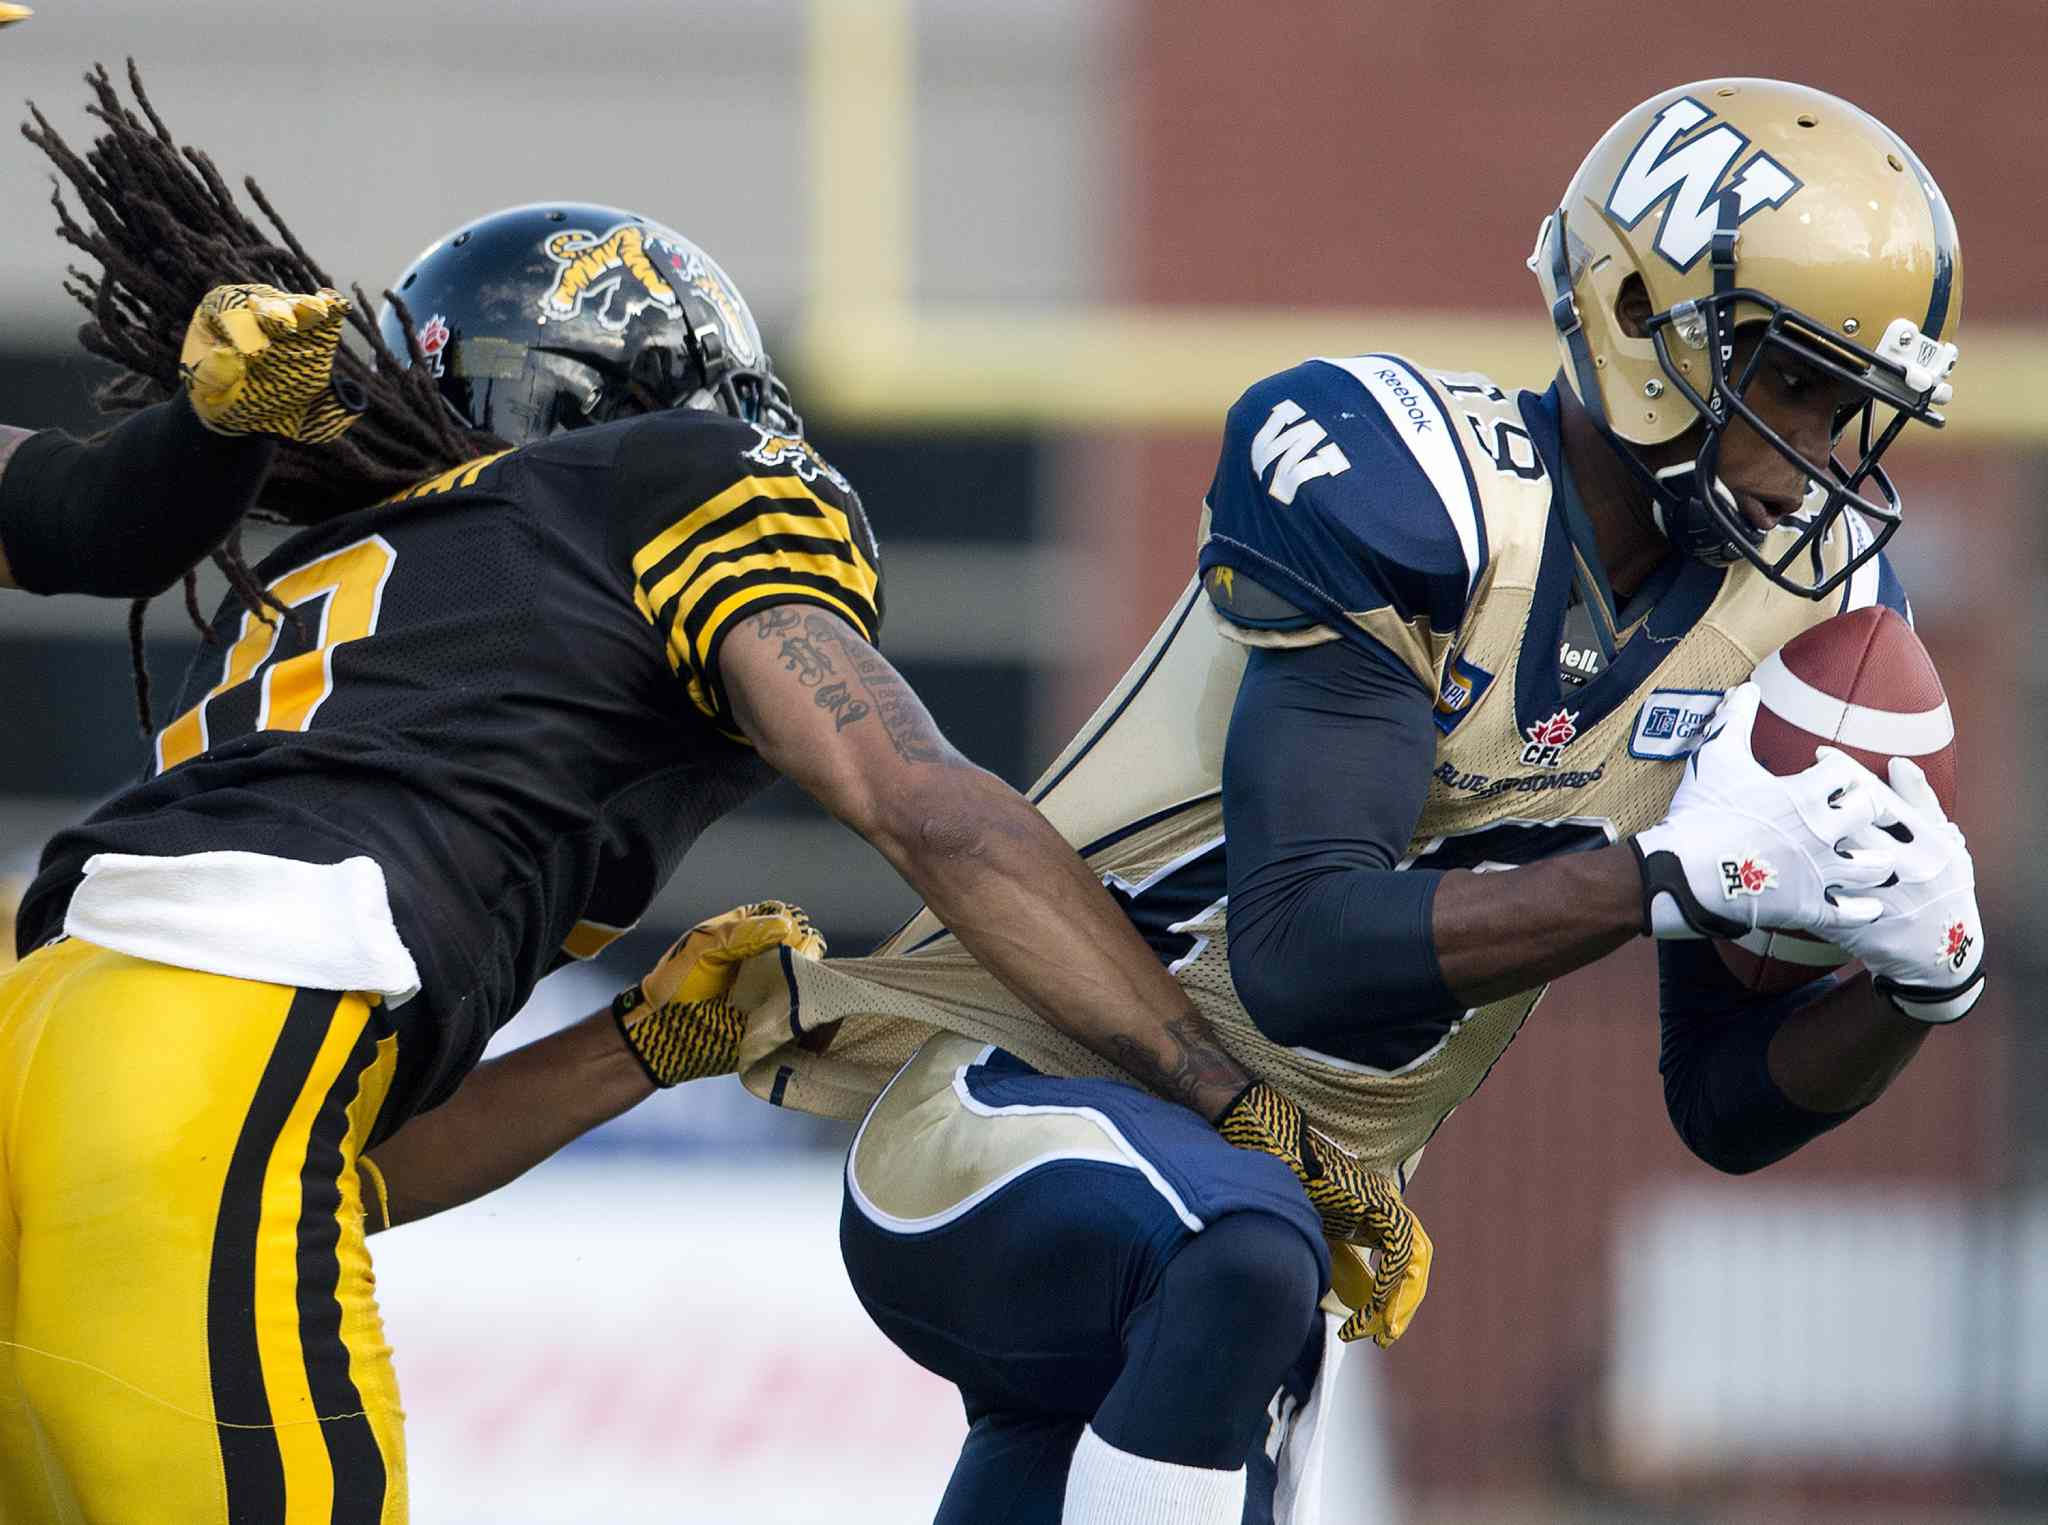 Hamilton Tiger-Cats' linebacker Rico Murray, left, tackles Winnipeg Blue Bombers' receiver Aaron Kelly, right, during the first half of Thursday's game.